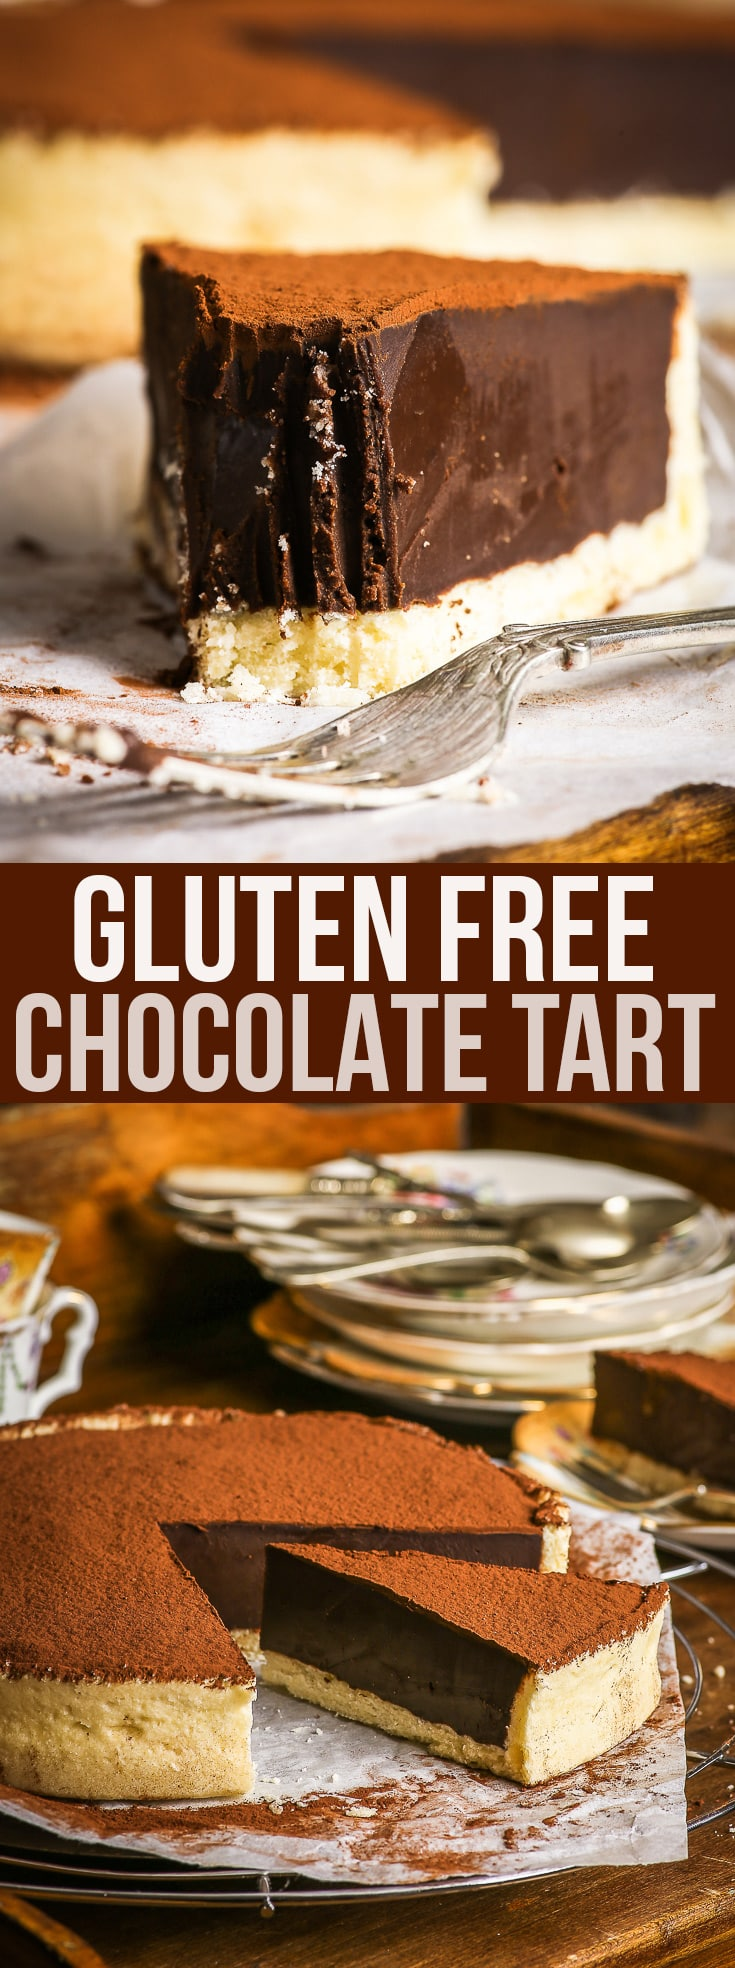 Ridiculously Decadent Gluten Free Chocolate Tart - This decadent gluten free chocolate tart just might be one of the best gluten free desserts you'll ever try. With a sweet, buttery gluten free shortcrust pastry, and a rich dark chocolate ganache filling, this gluten free tart is what chocolate lovers' dreams are made of. Gluten free recipe. Gluten free dessert. Chocolate dessert. #glutenfree #chocolate #tart #recipe #dessert